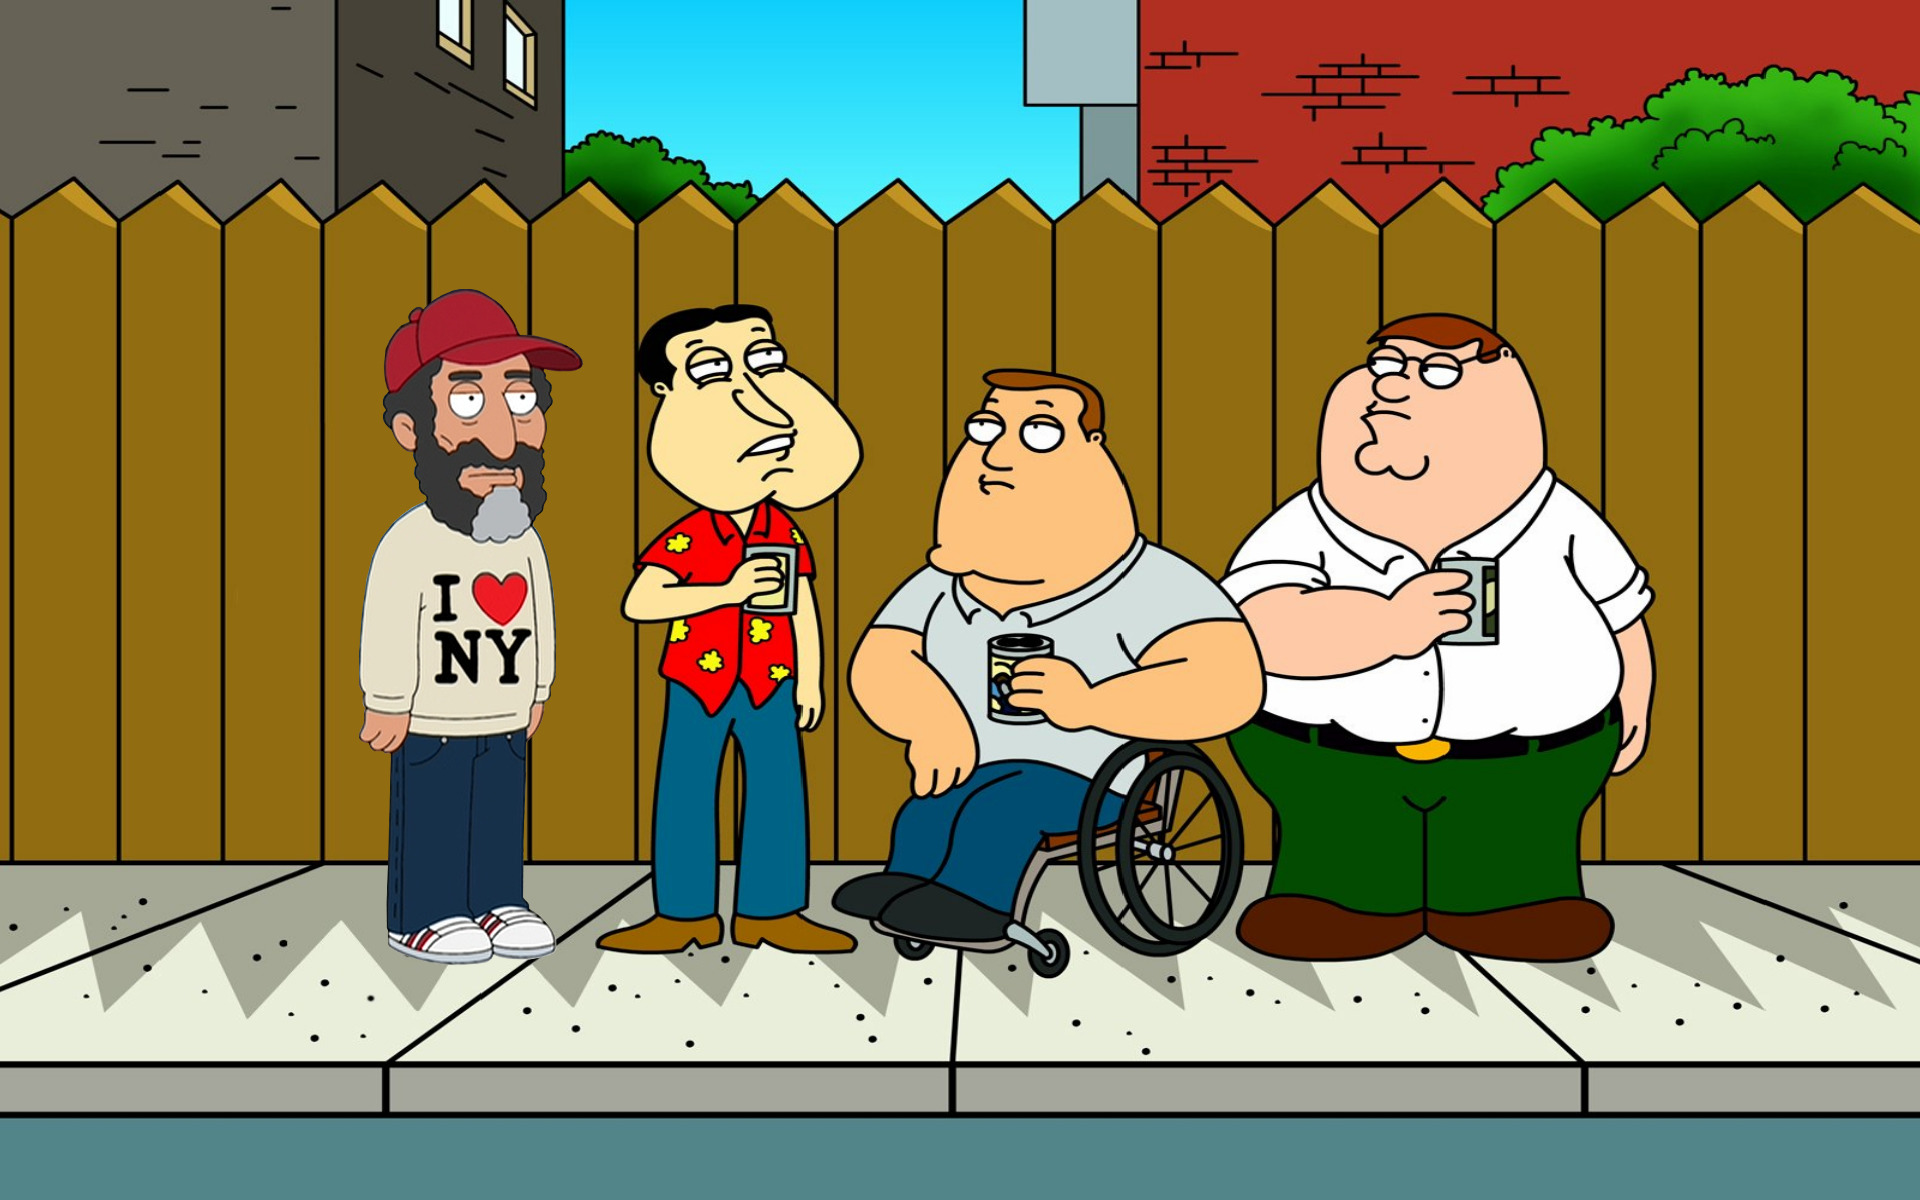 family guy New York HD Wallpaper